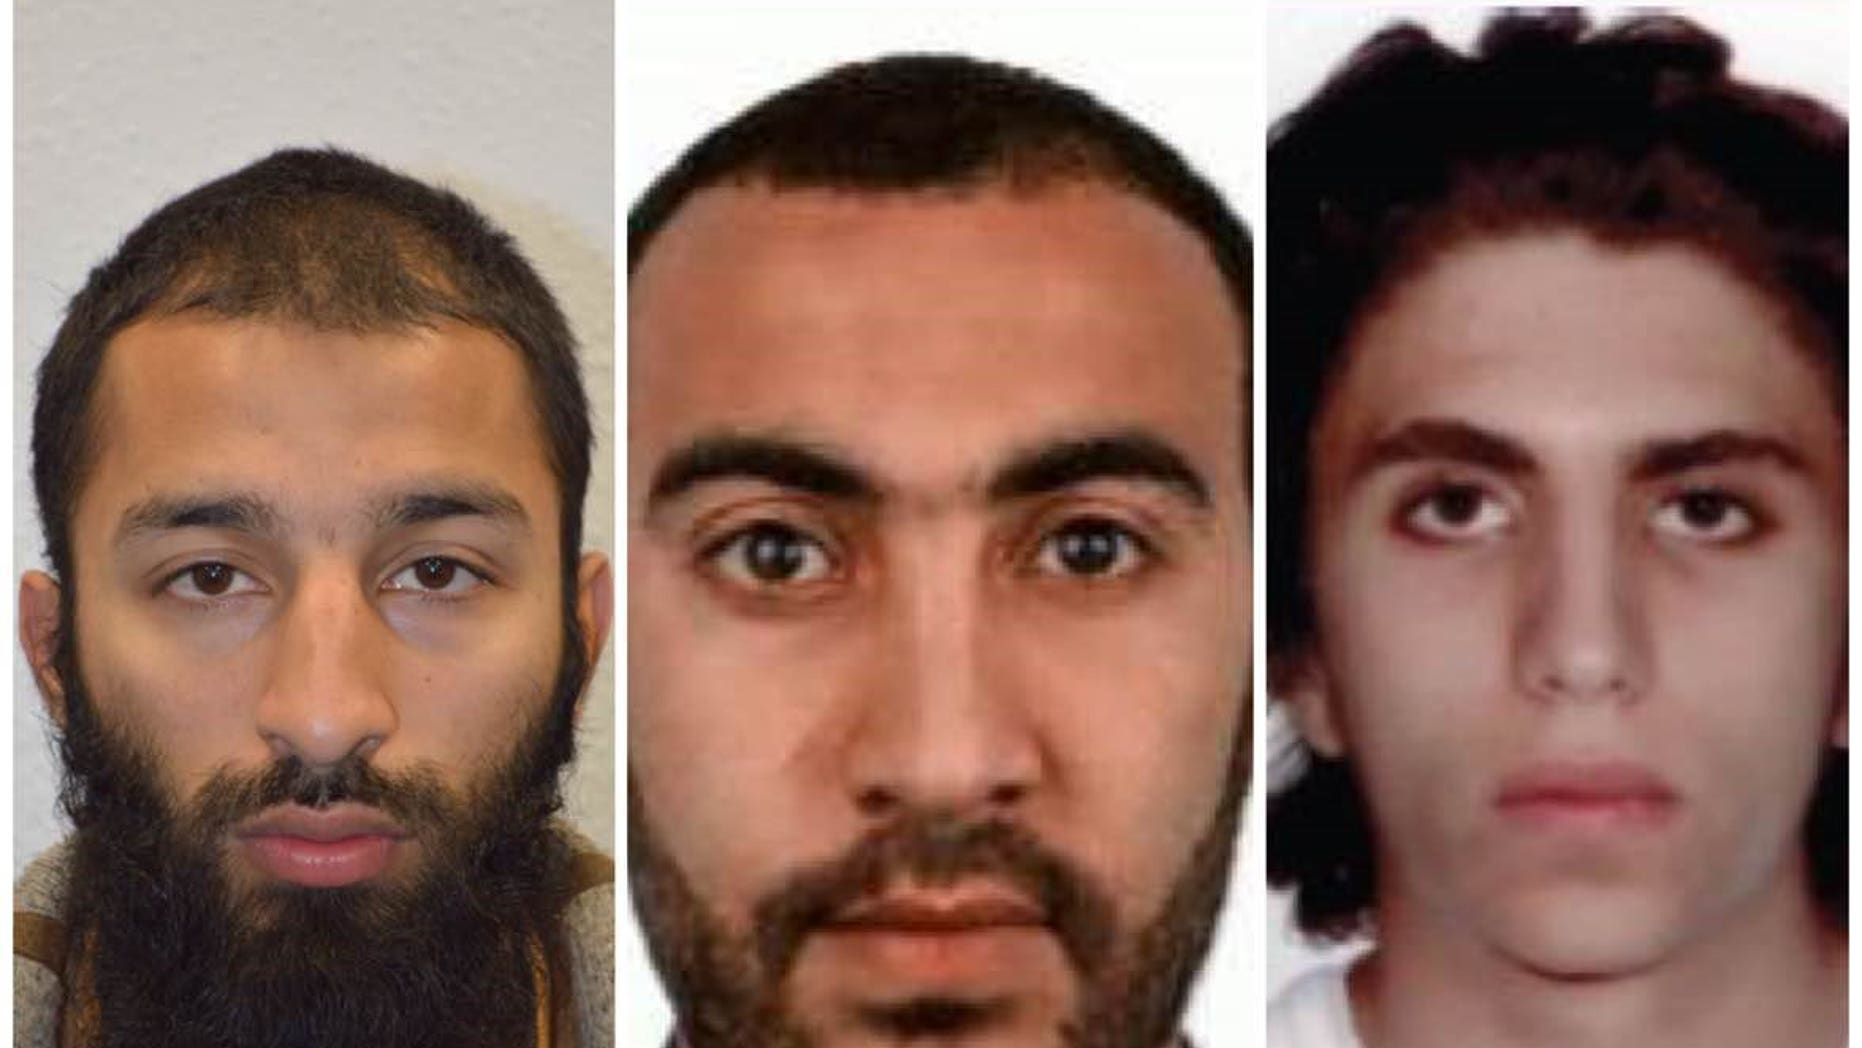 The London attackers were identified as Khuram Shazad Butt, left, Rachid Redouane and Youssef Zaghba.